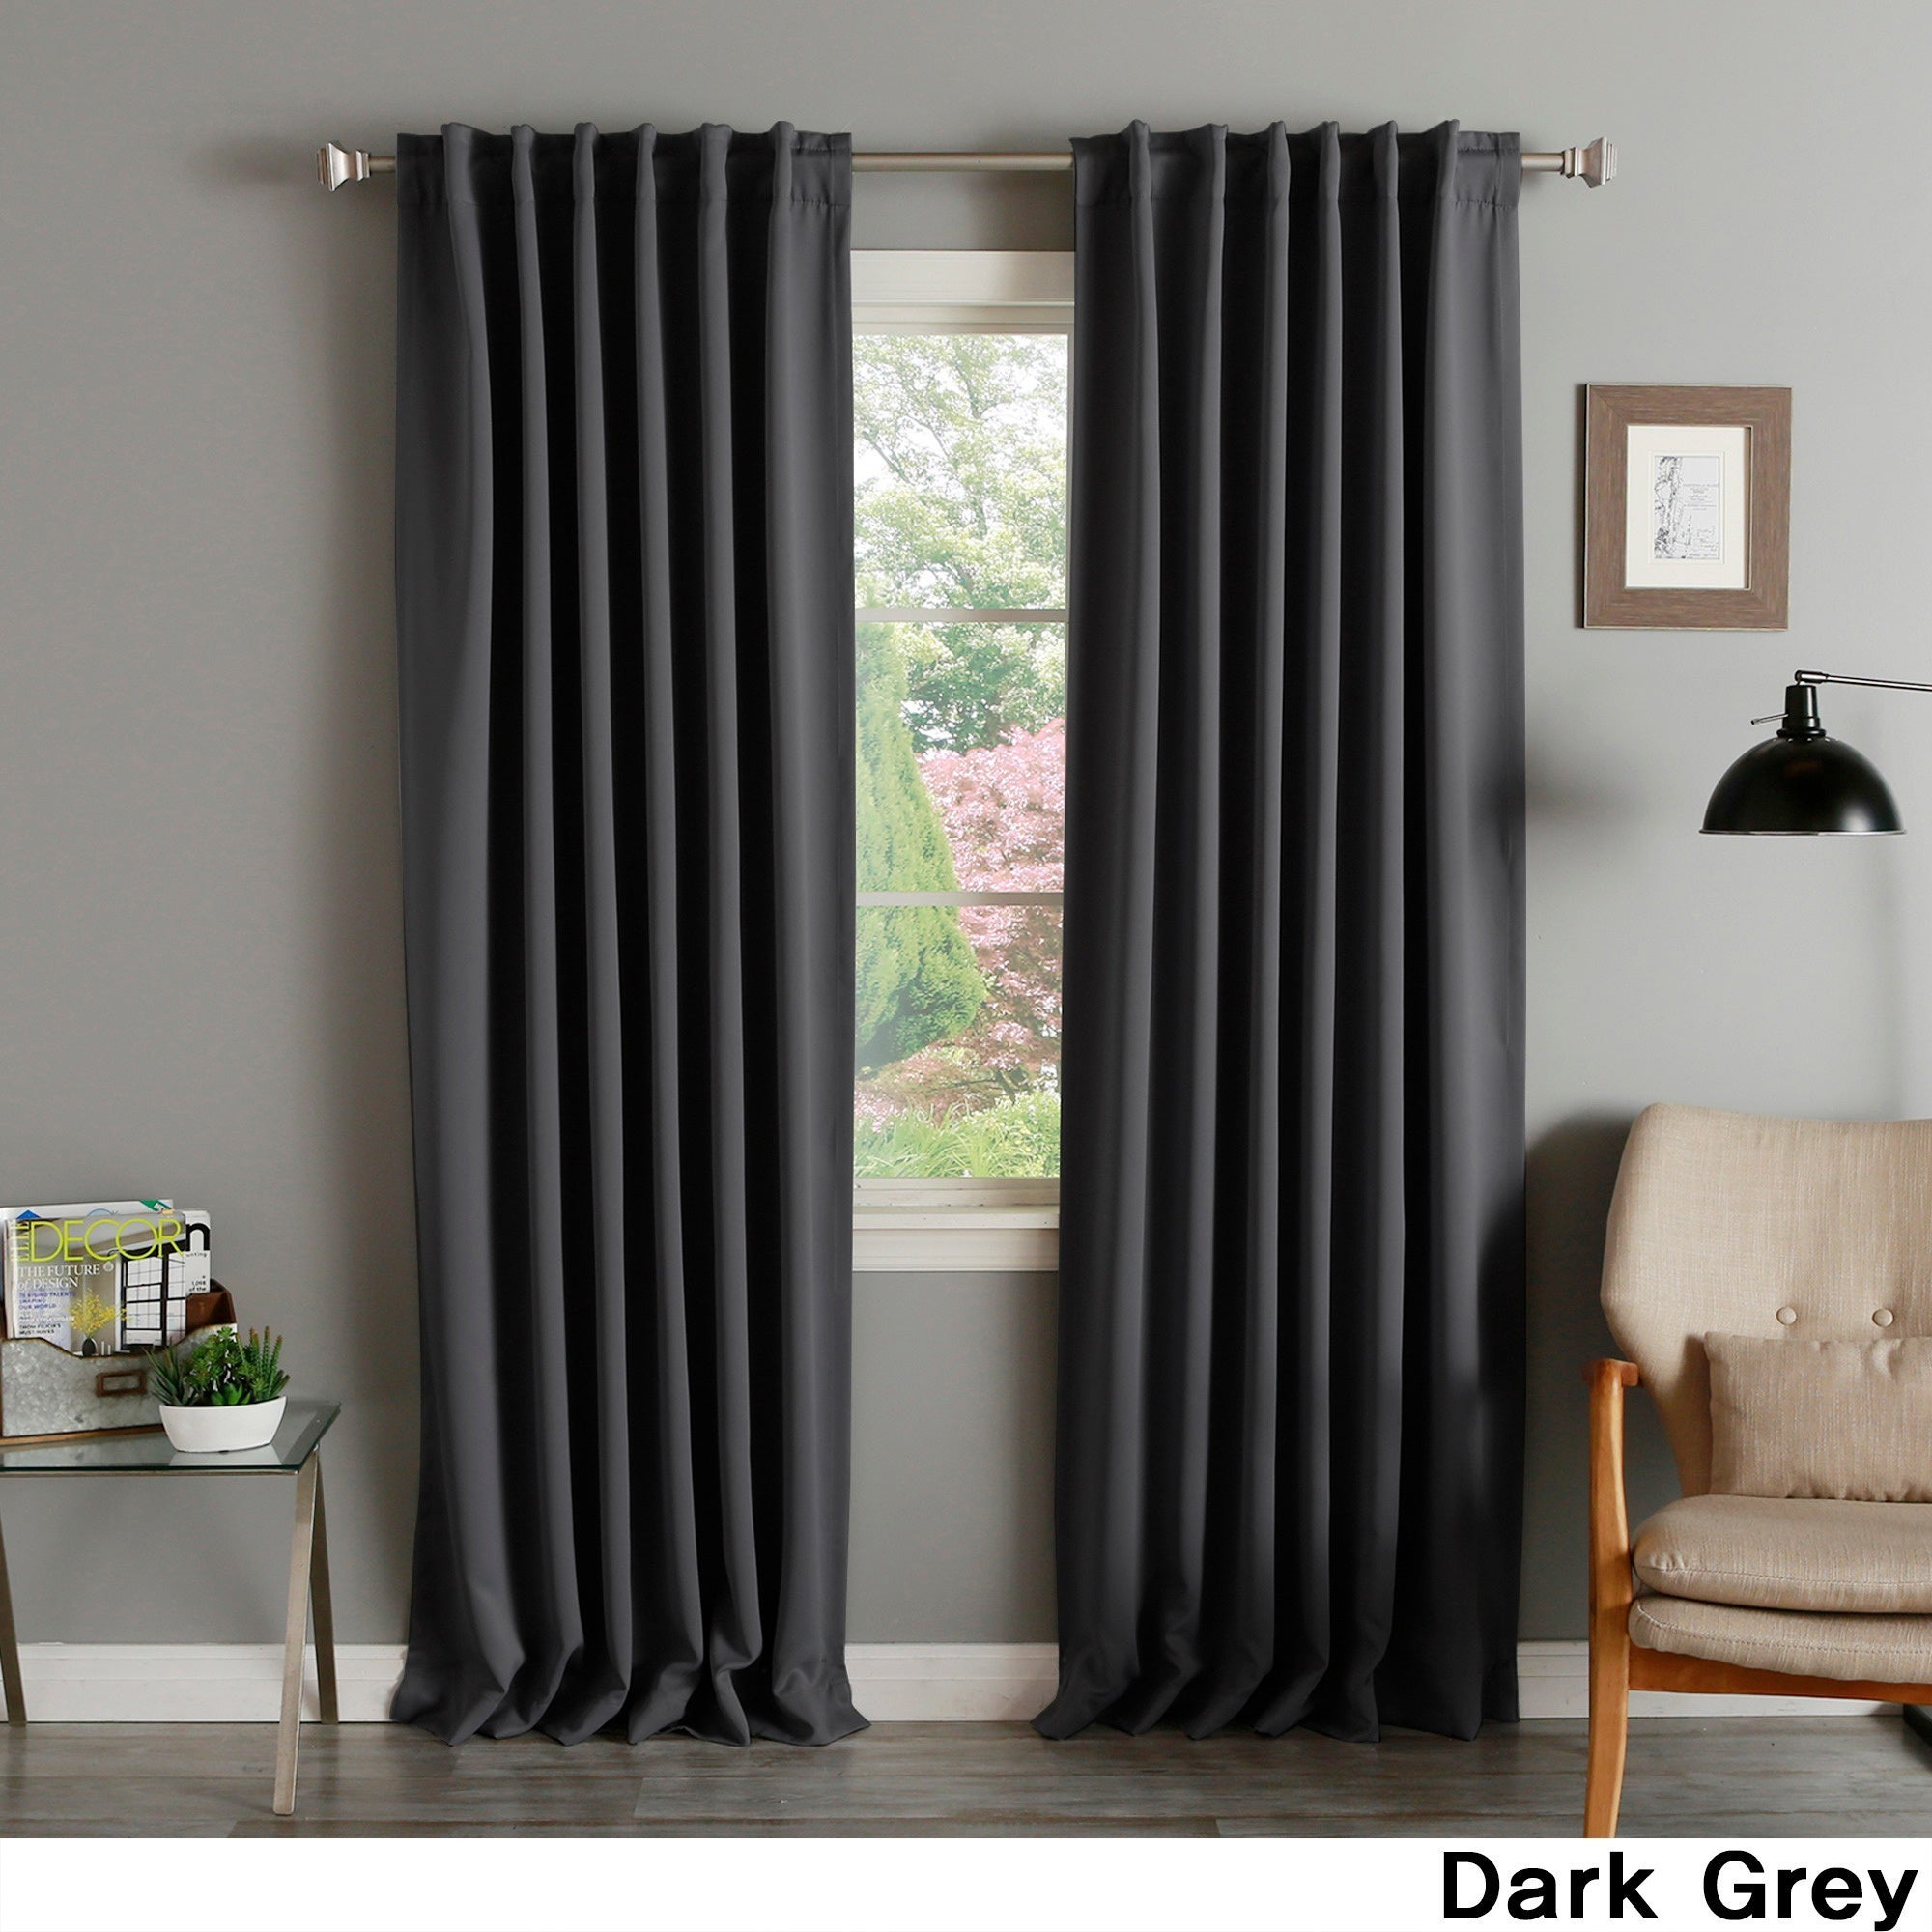 Aurora Home Solid Thermal Insulated 108 Inch Blackout Curtain Panel Pair – 52 X 108 Inside Solid Insulated Thermal Blackout Curtain Panel Pairs (View 5 of 30)